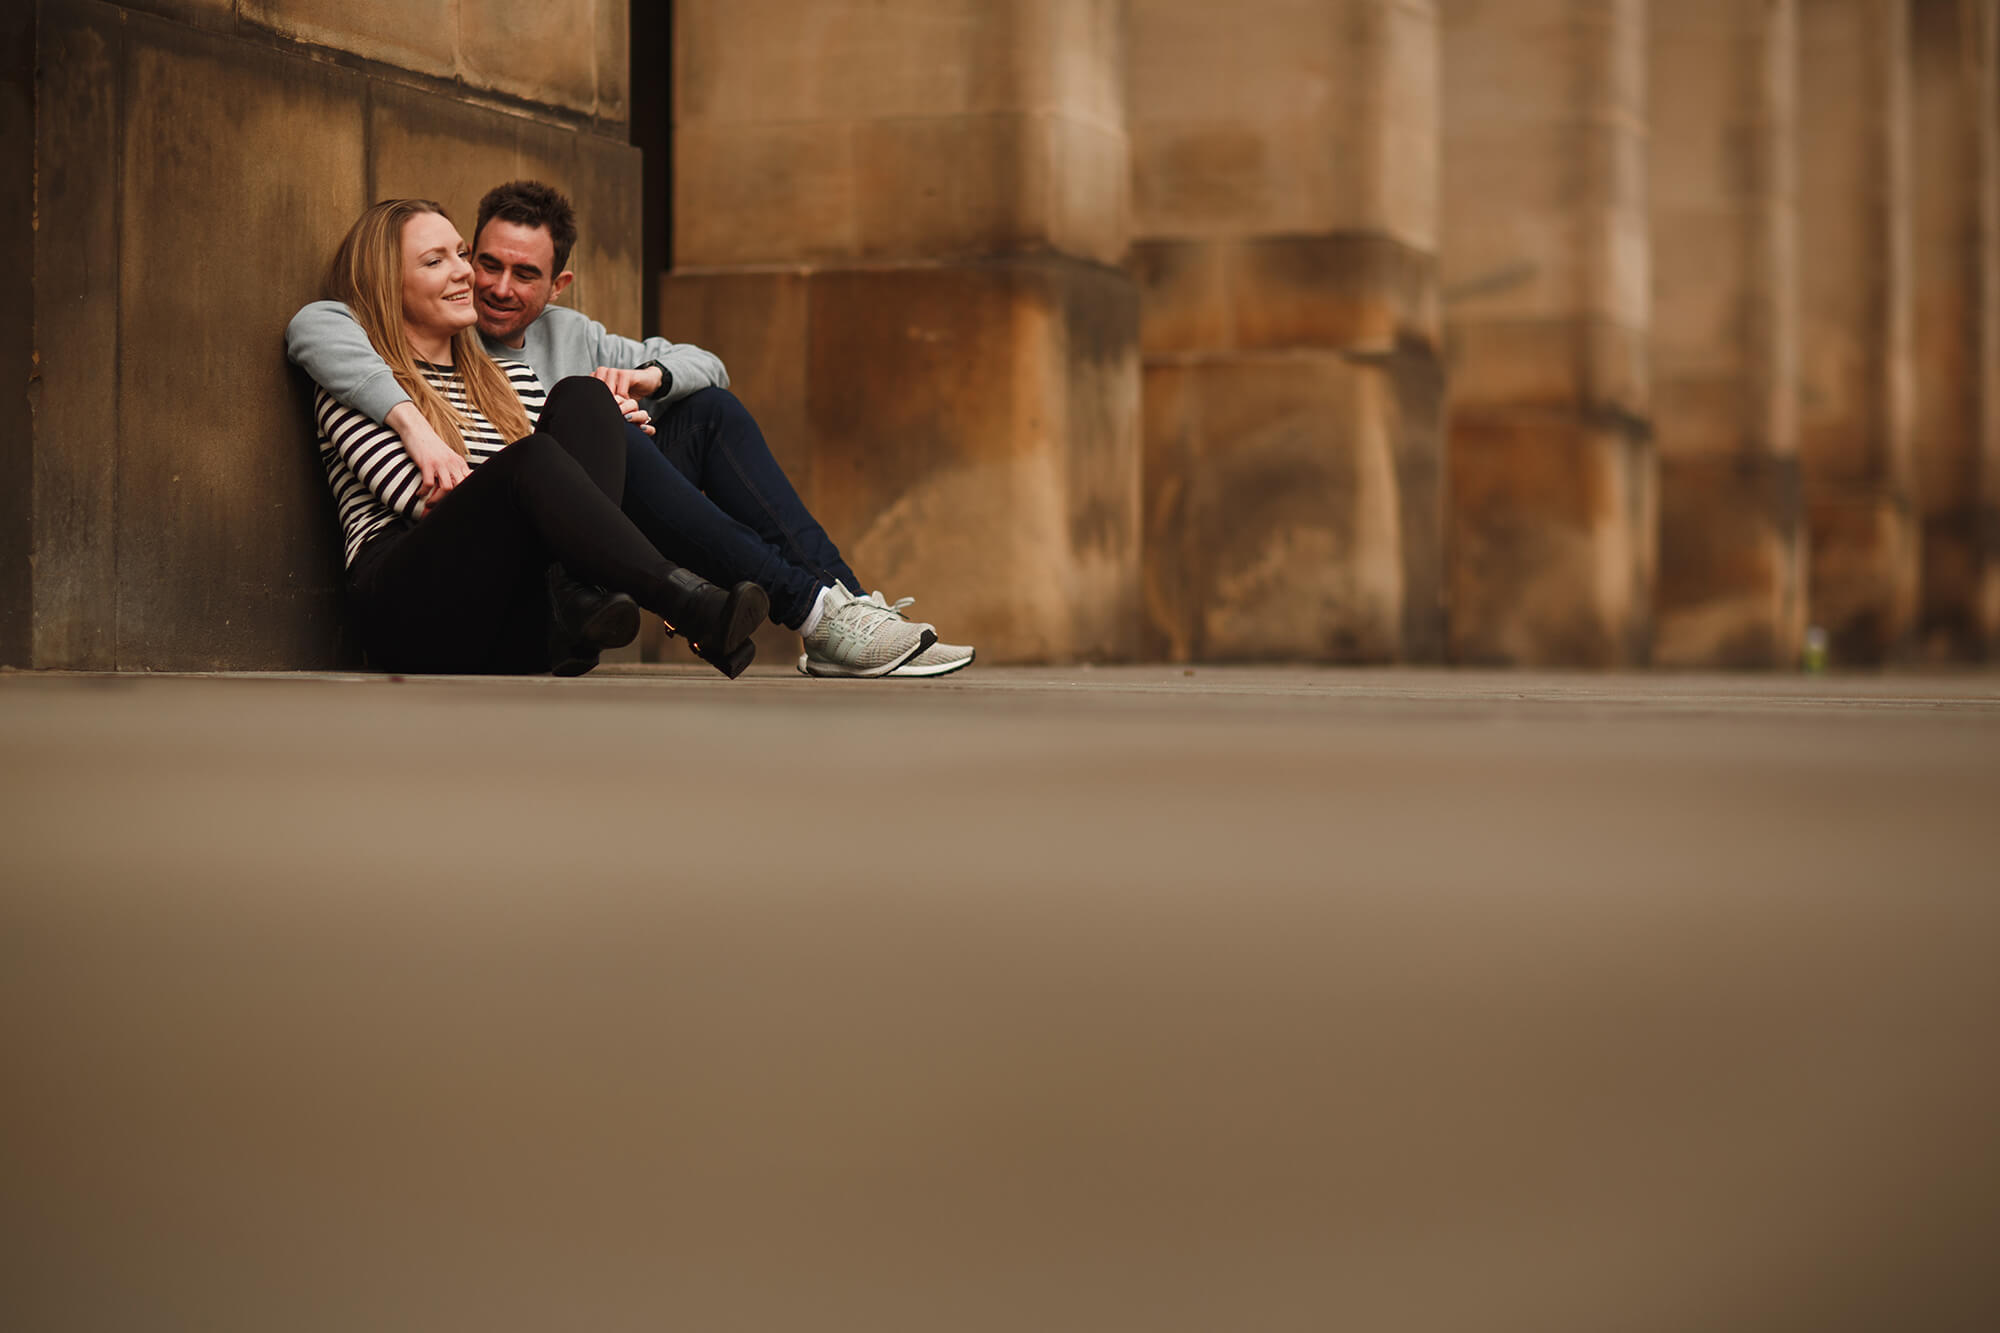 manchester photo of engaged couple